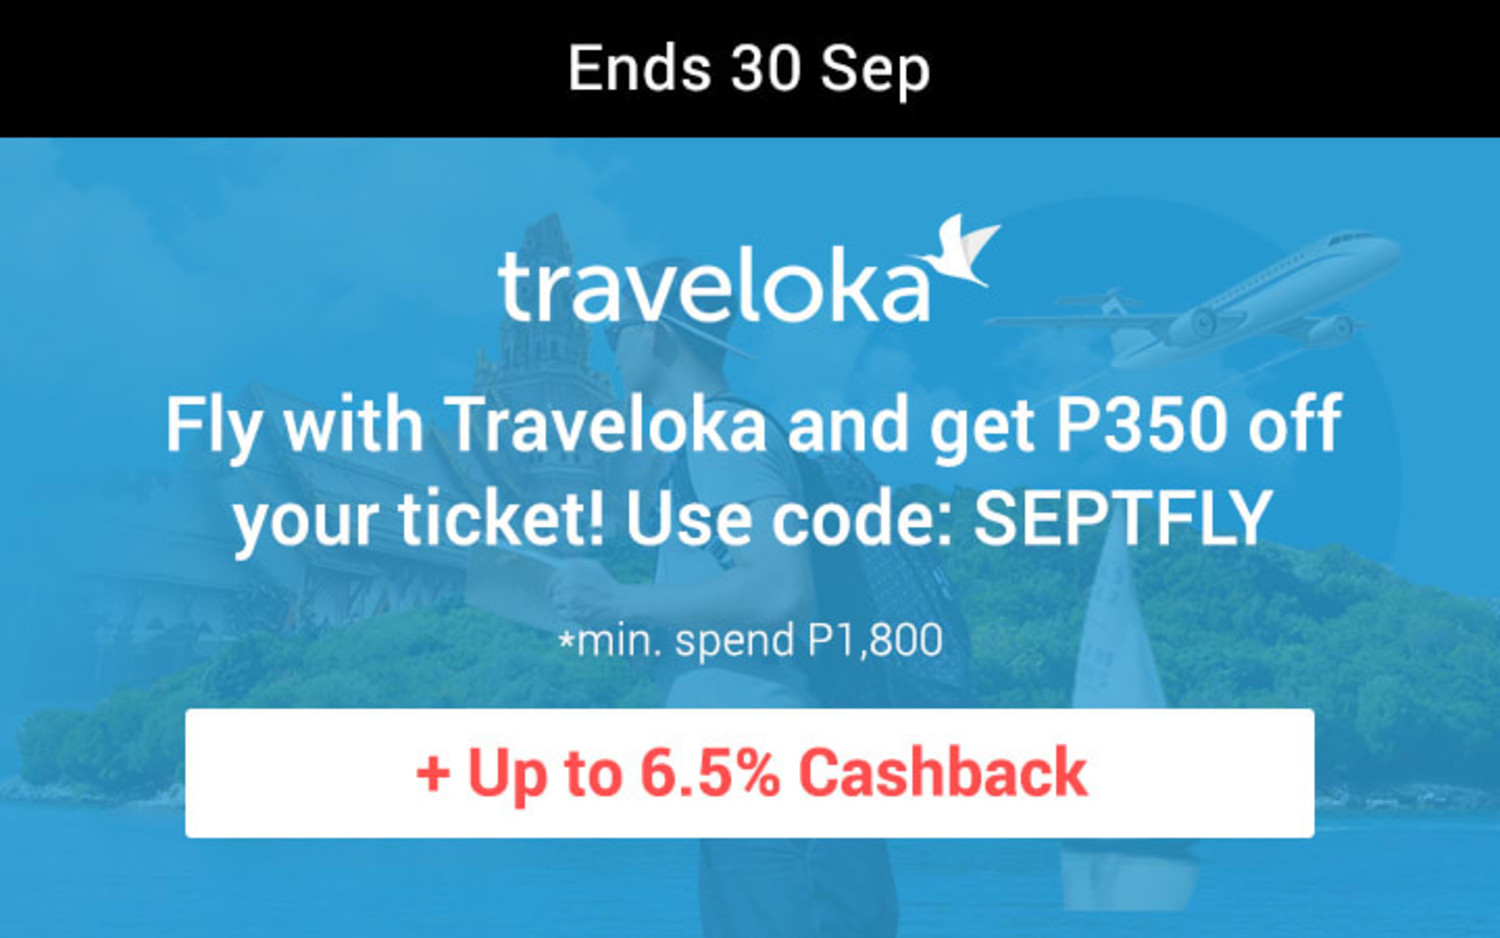 Ends 30 Sep | Fly with Traveloka and get P350 off your ticket! Use code:  SEPTFLY + Up to 6.5% Cashback | Min. spend P1,800